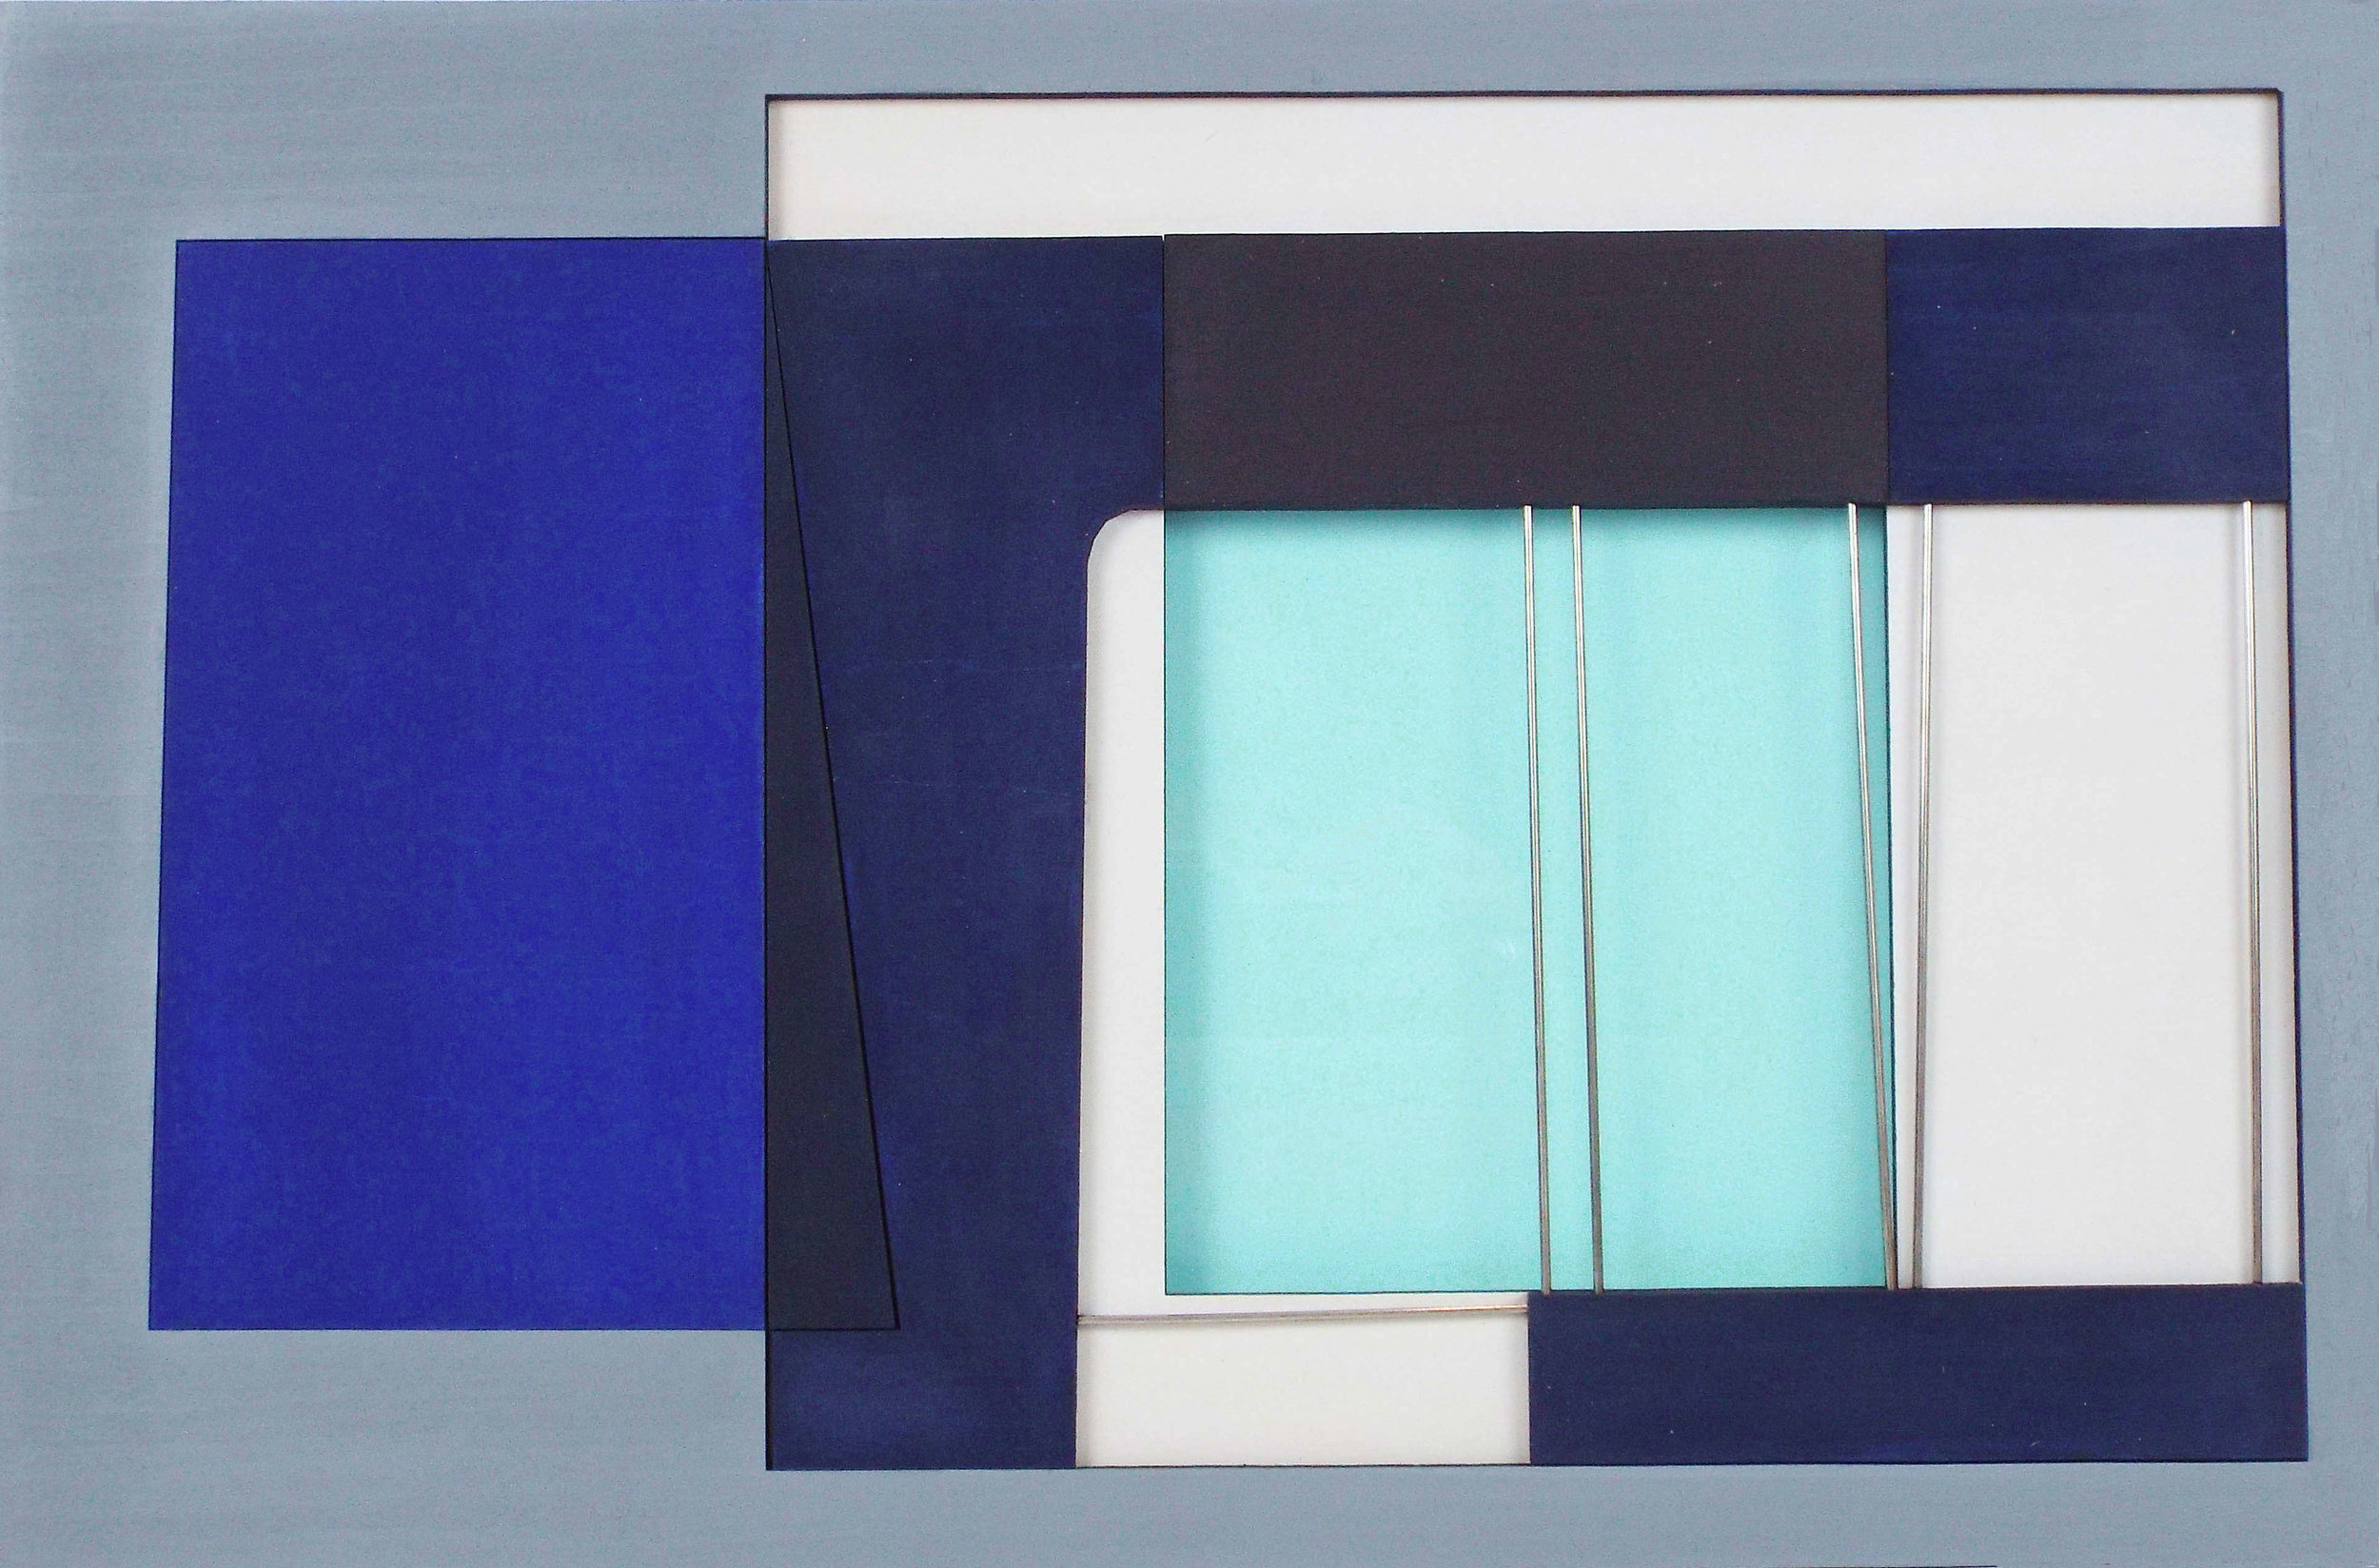 Artist: Hetty Haxworth  Title: Luminous Pools  Size: 41 x 58 cm  Medium: Wood and perspex relief  Price: £600 fr   Buy Now